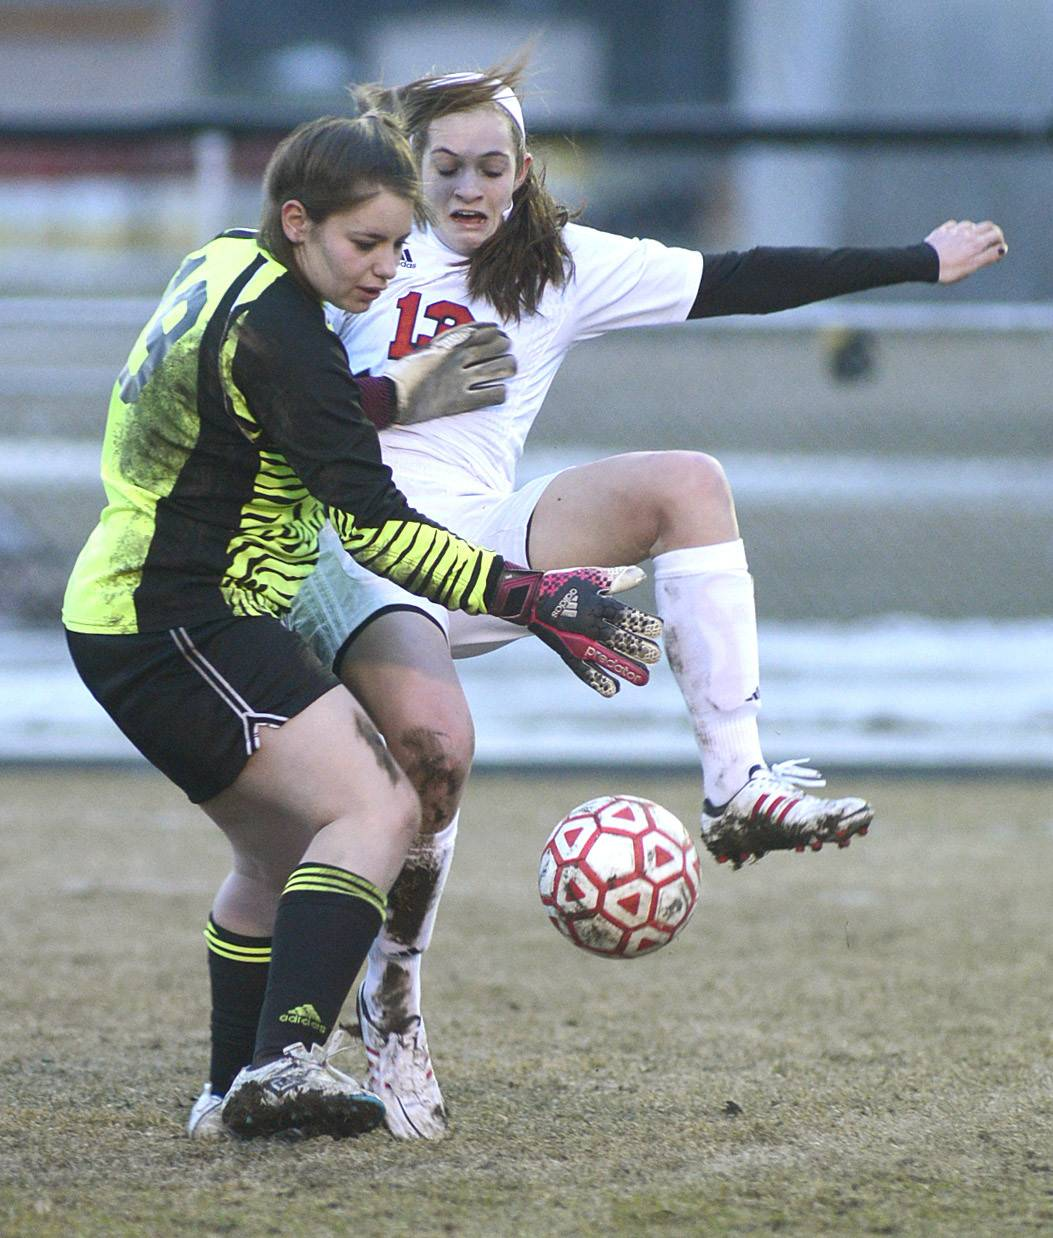 Batavia's Mackenzie Foster collides with Plainfield Central goalie Tiffany Lenza while trying to kick the ball past her during the Bulldogs' 5-0 win Tuesday in Batavia.